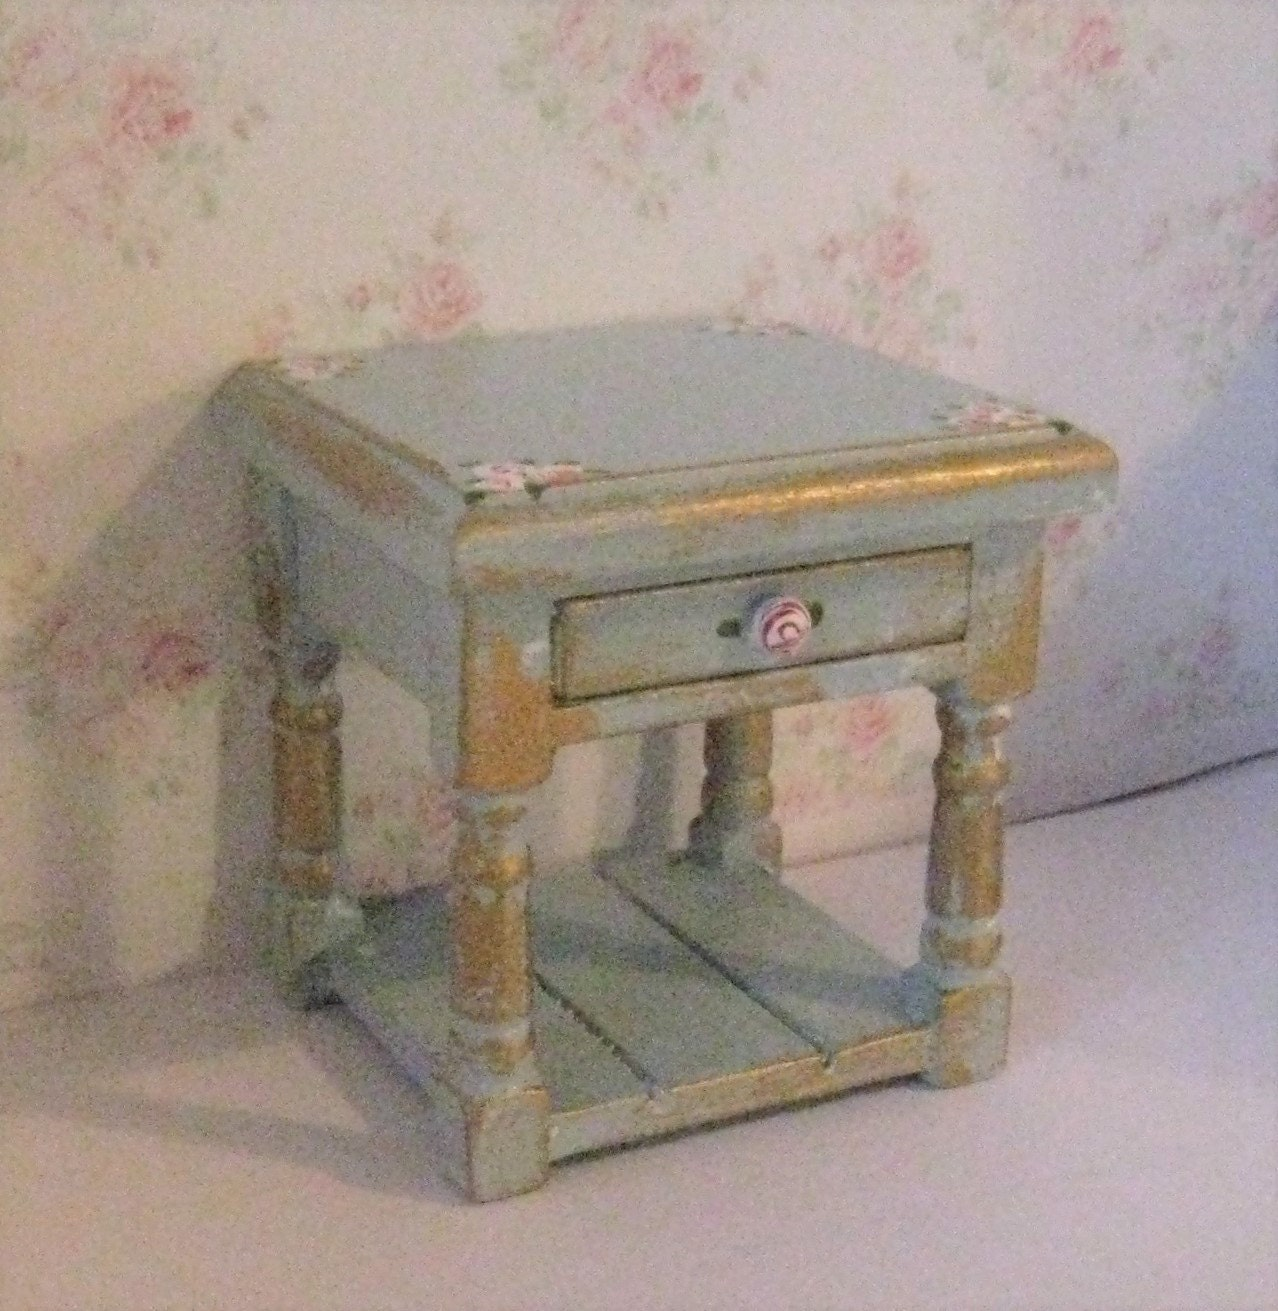 Dollhouse Bedside chest a dollhouse chest duck egg blue  miniature chest bedside  lamp table mini lamp table  in twelfth scale